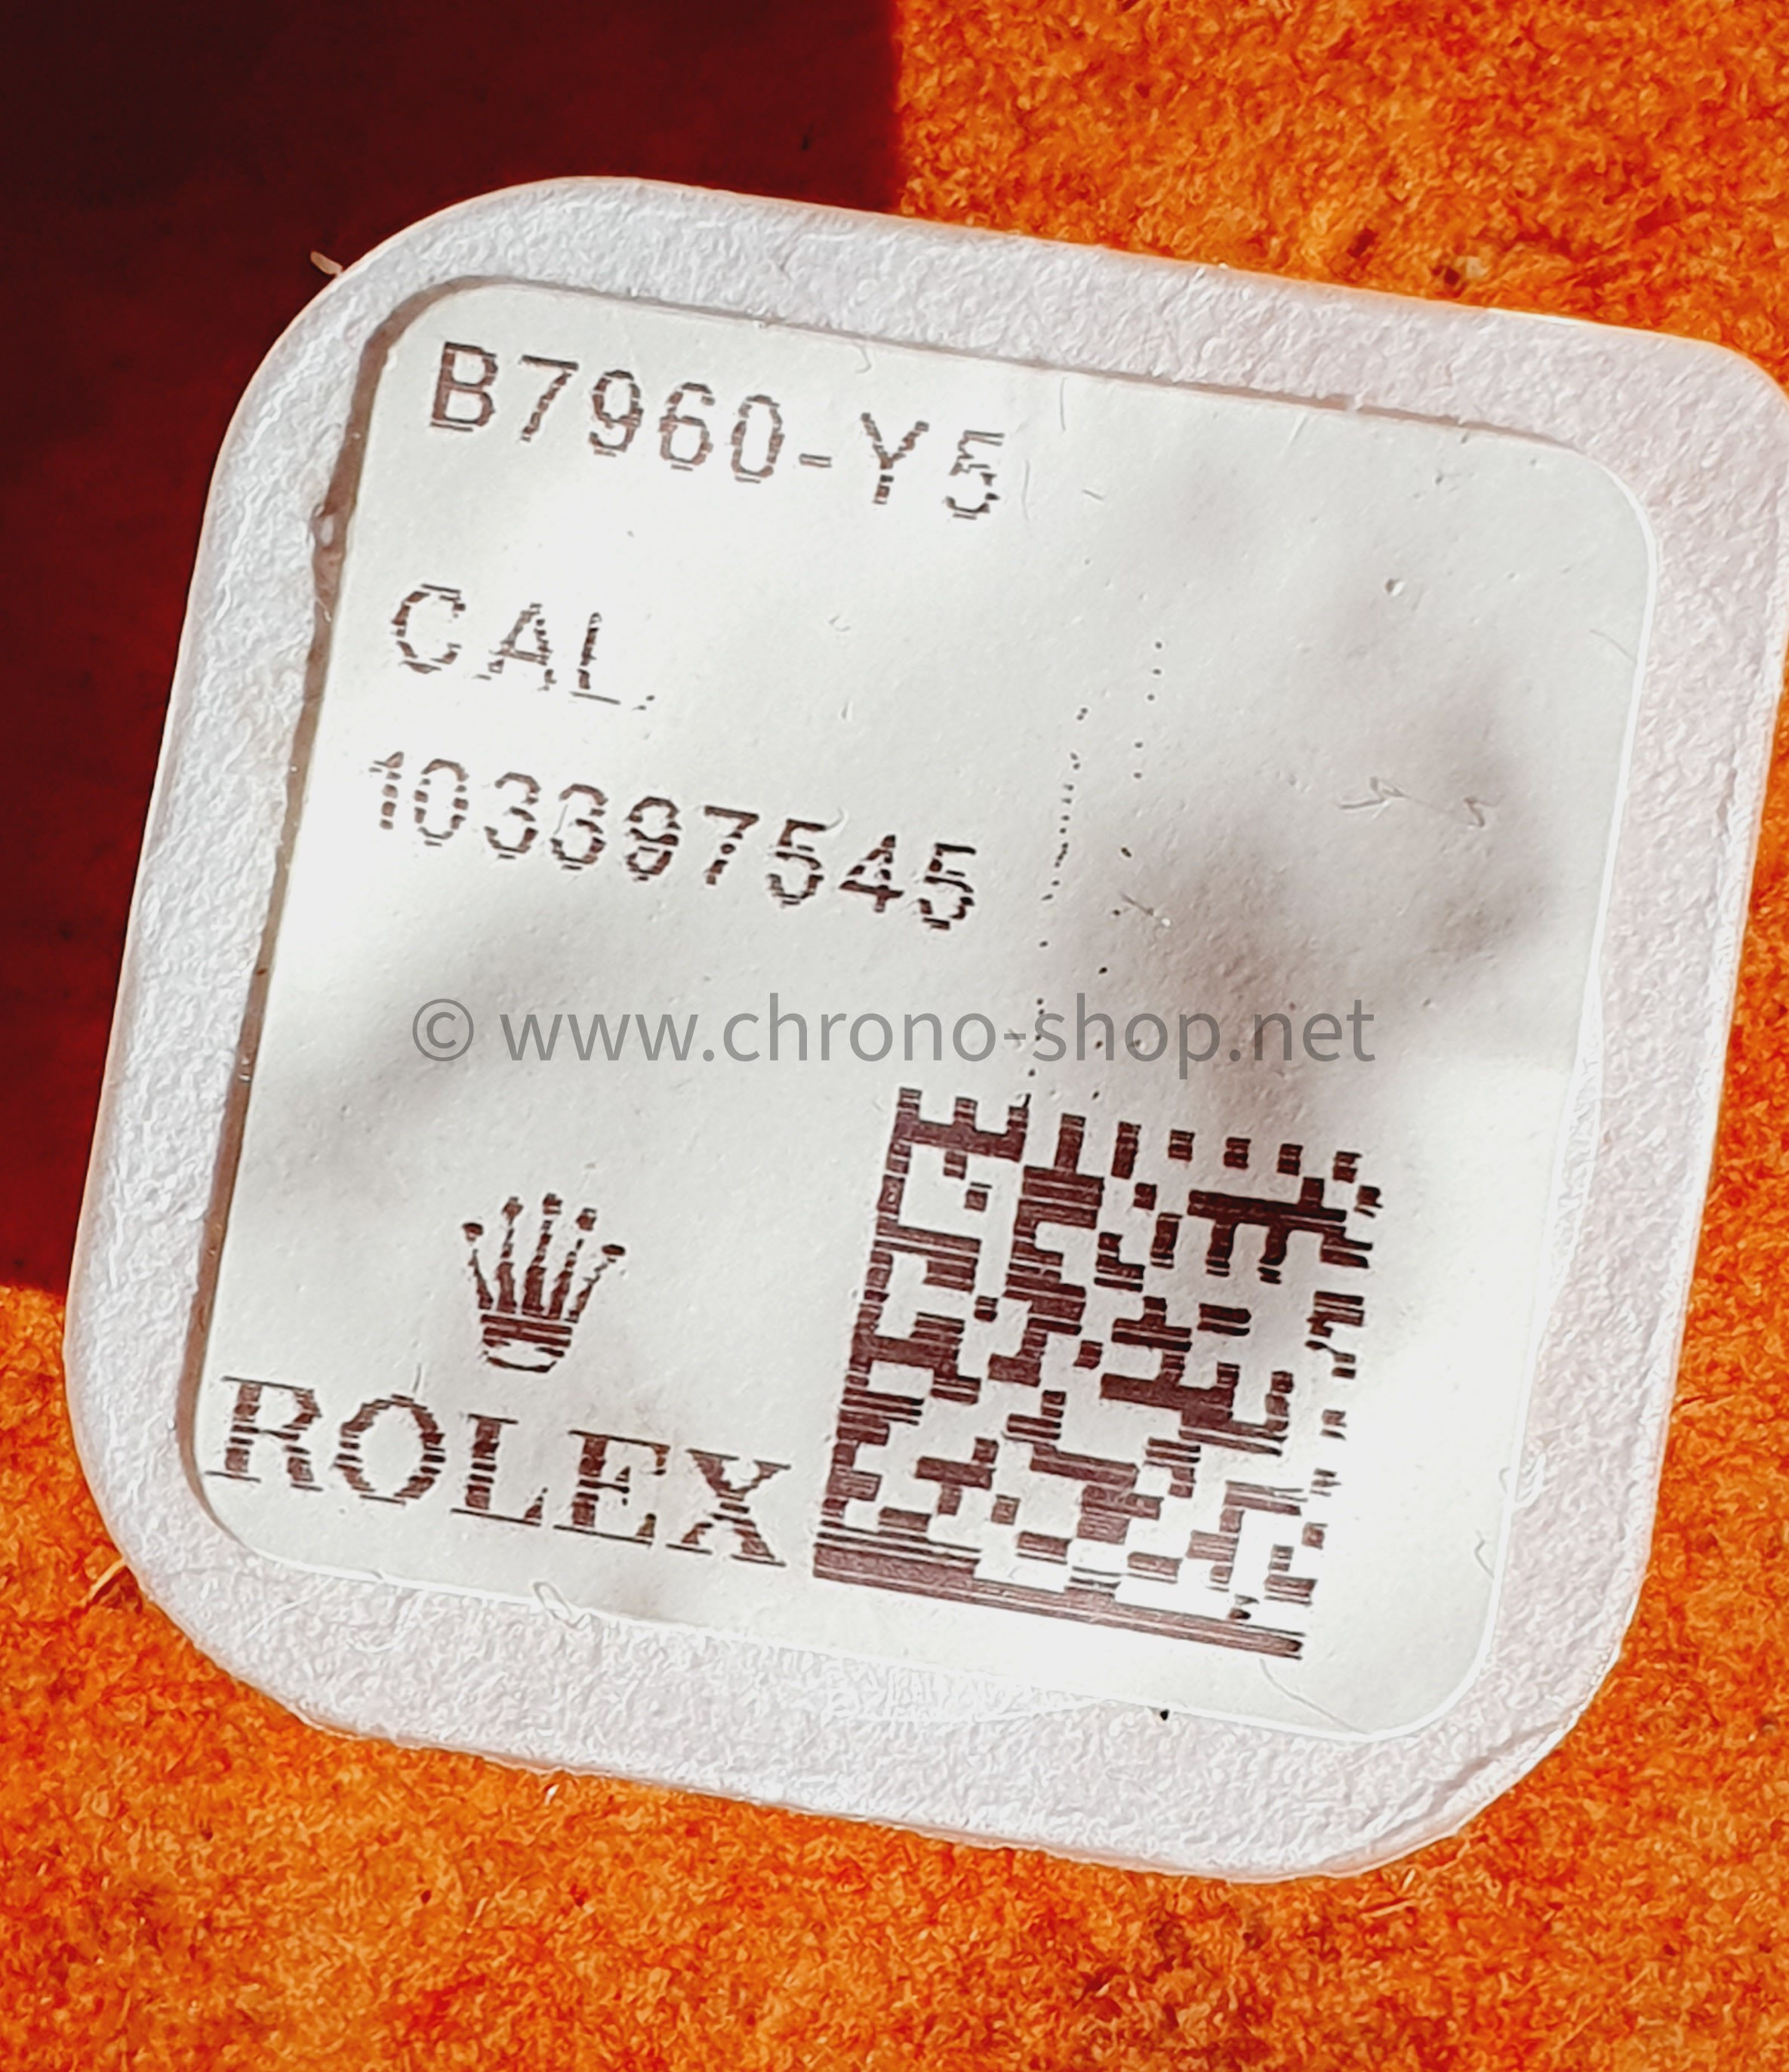 Rolex Genuine factory 1556,1525 Ref 7960 Screws for Date Indicator Seating New Package ref 7960-Y5,7960, B7960